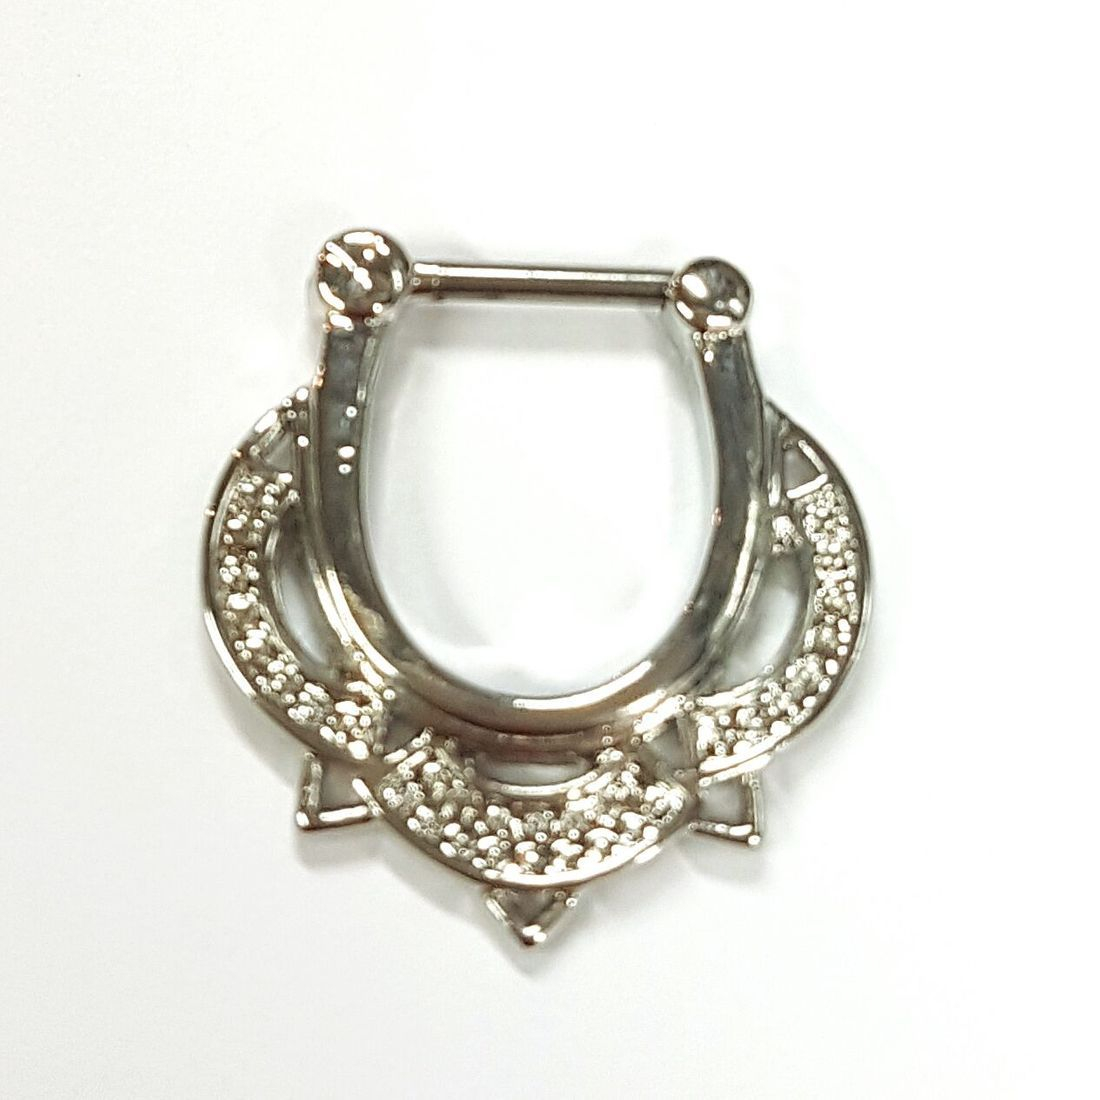 1.2 Elegant titanium septum clicker  available at Kazbah online and our Leicester City Centre Shop